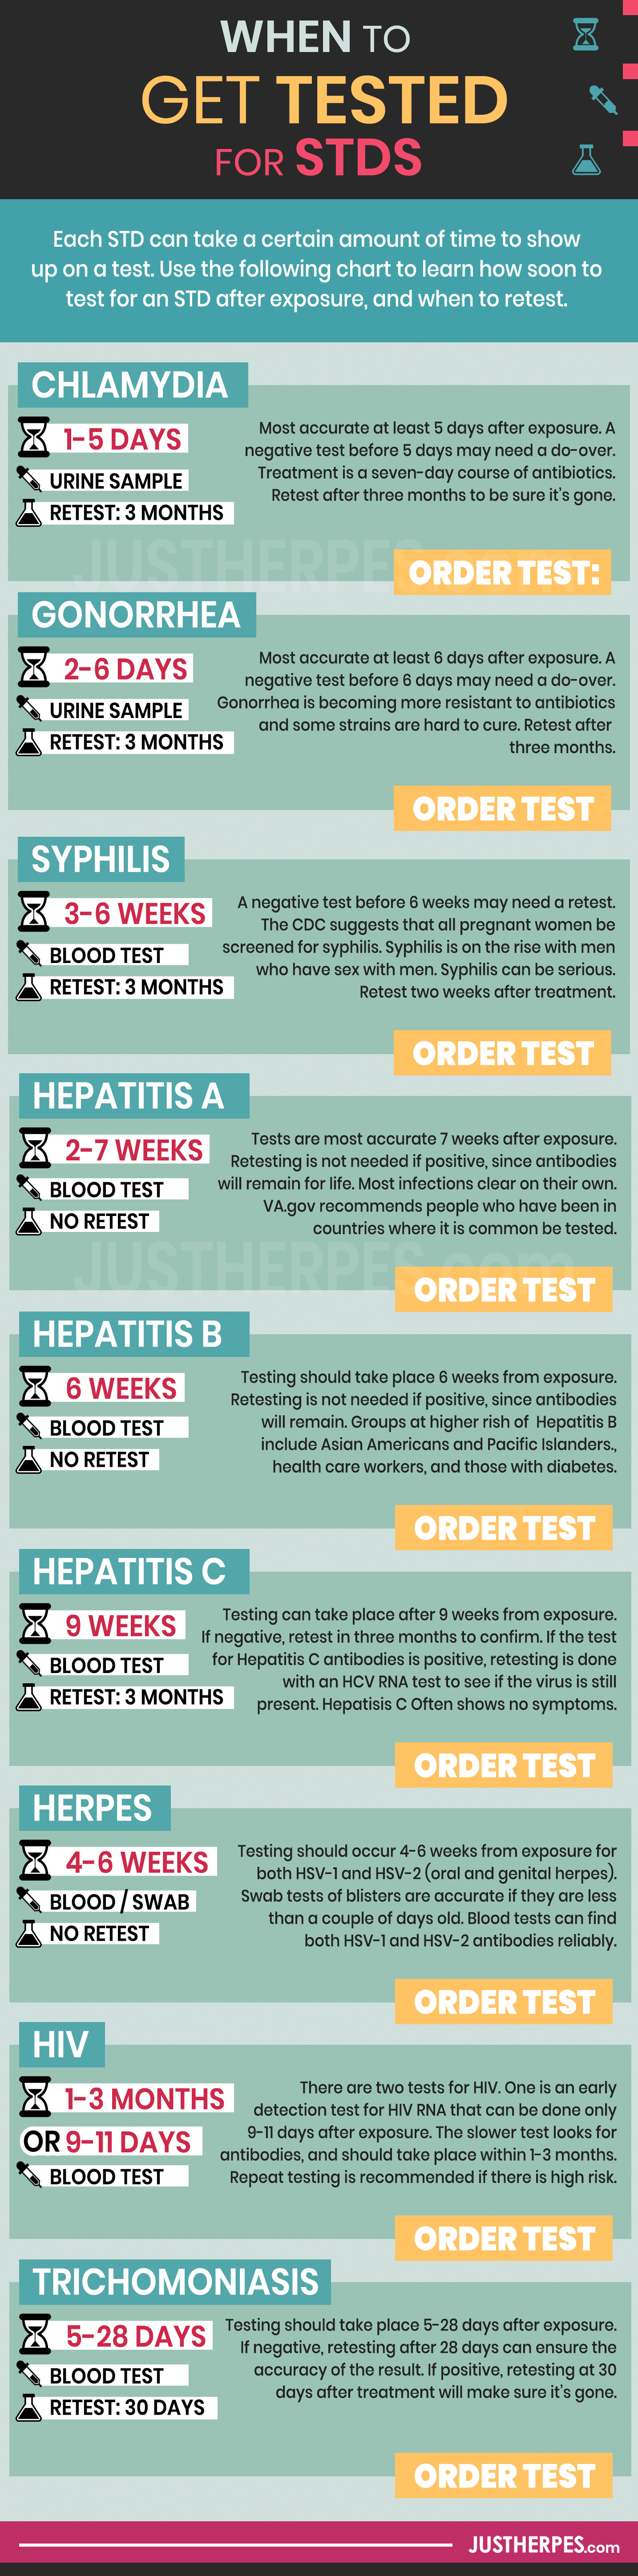 When to Get Tested for STDs Infographic